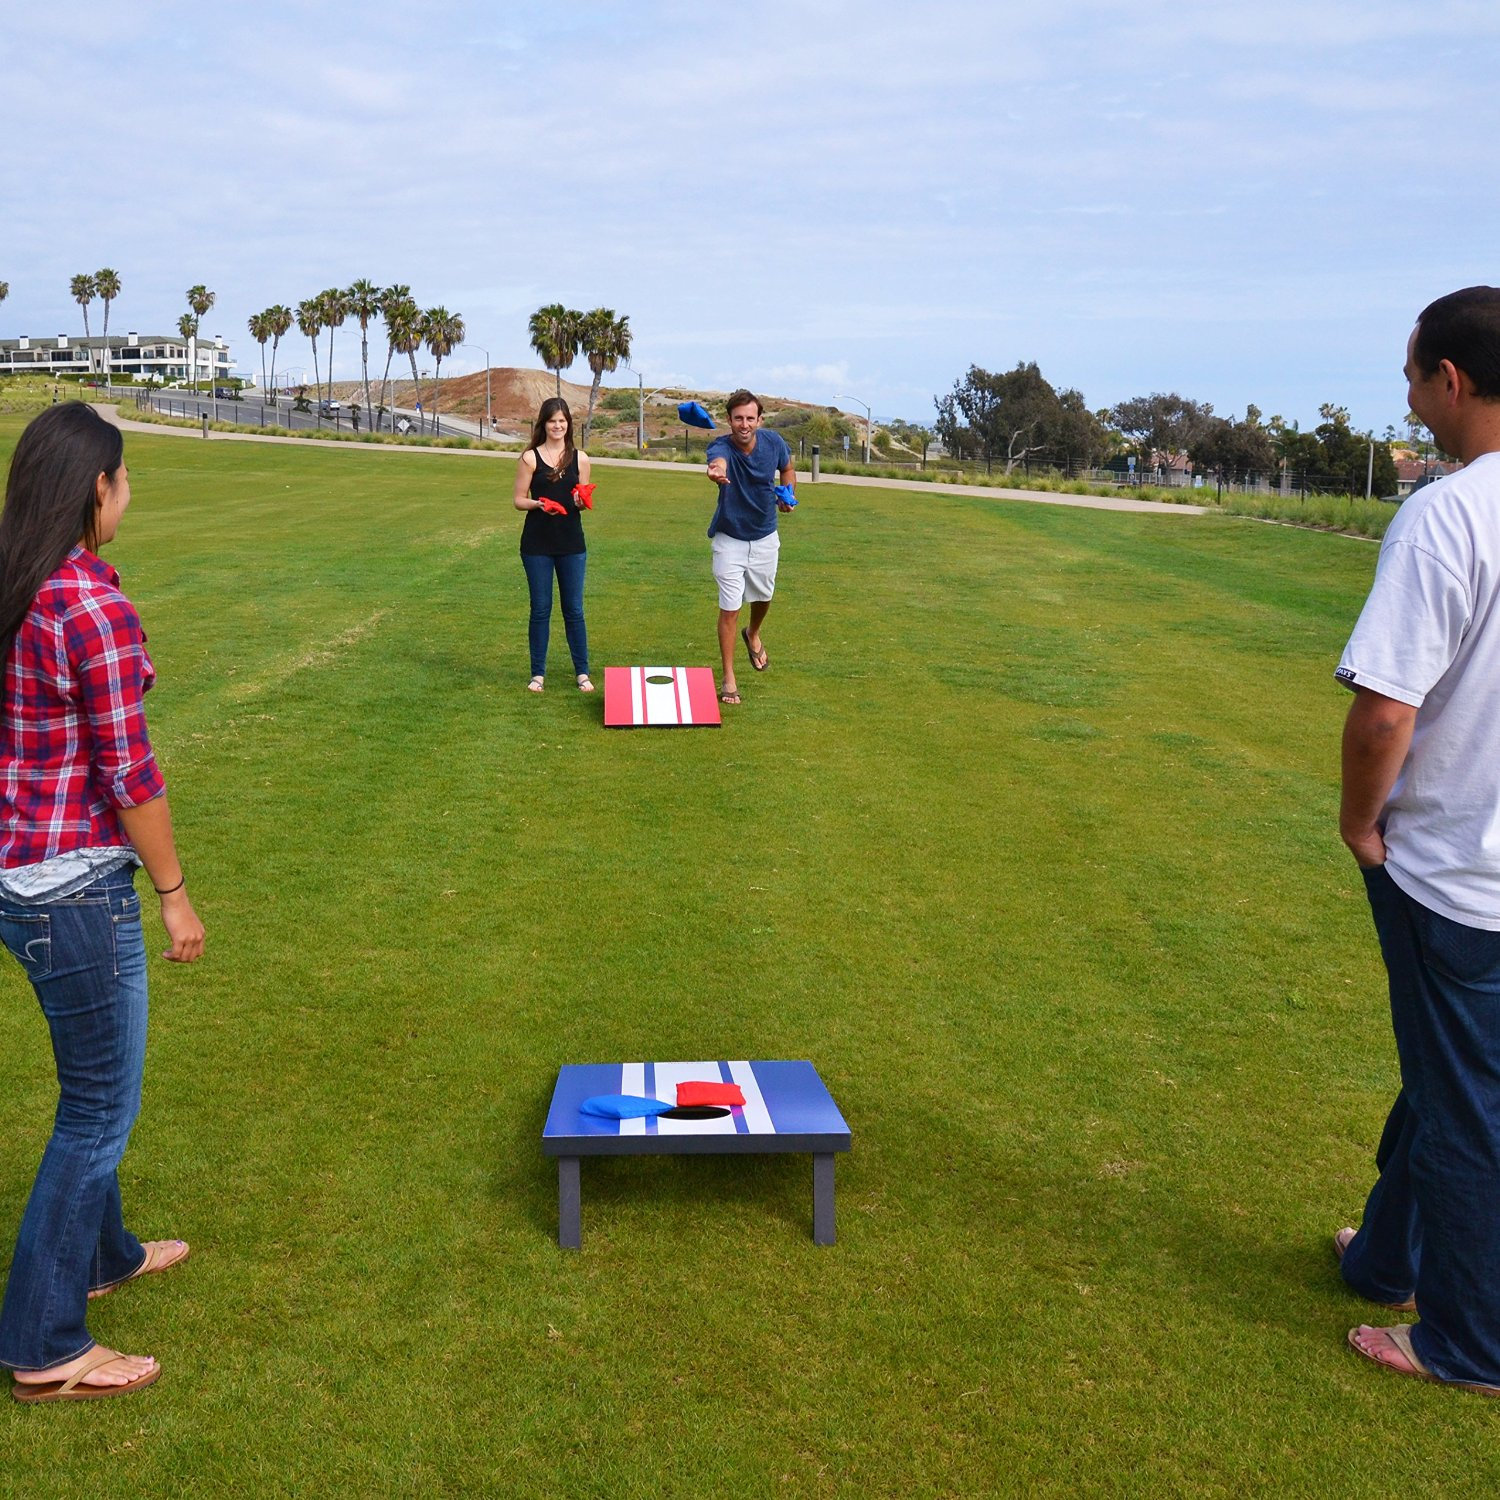 Corn Hole Game.jpg